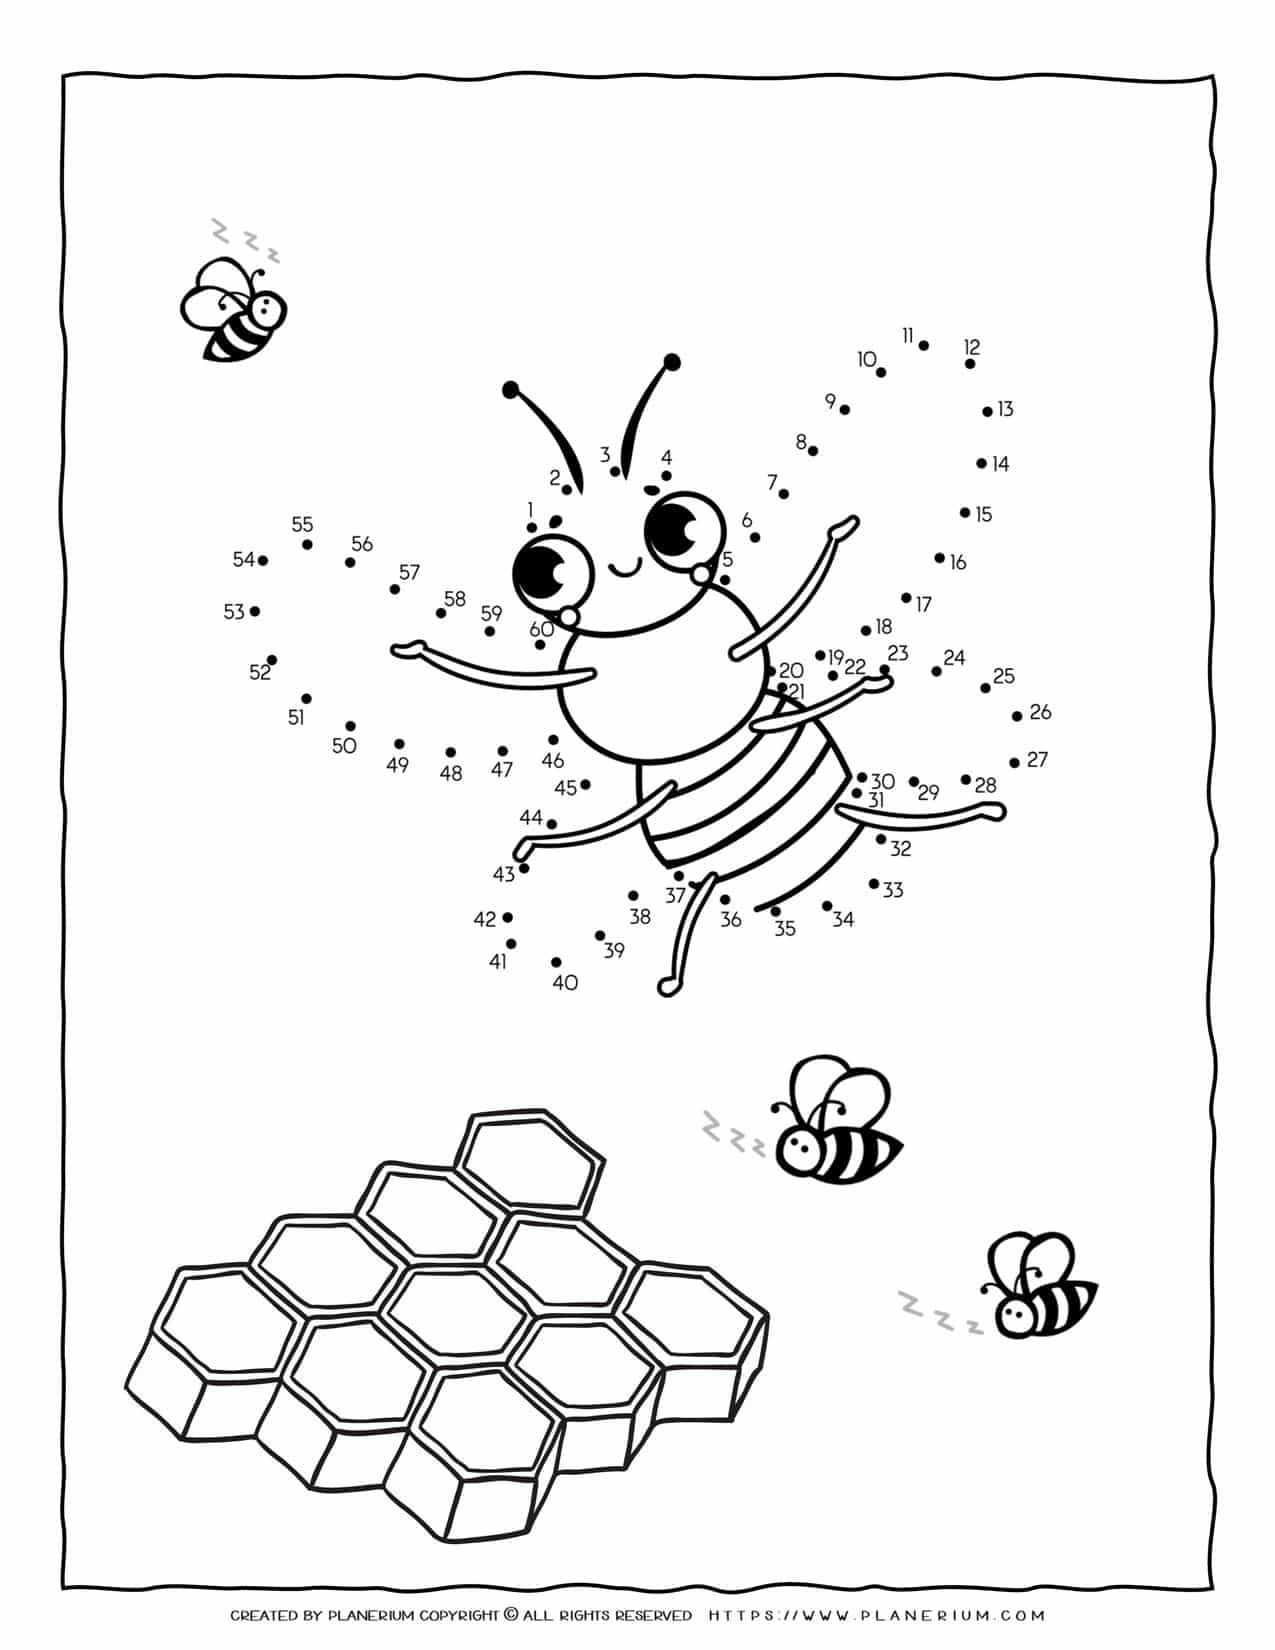 Bee Connect The Dots | Planerium